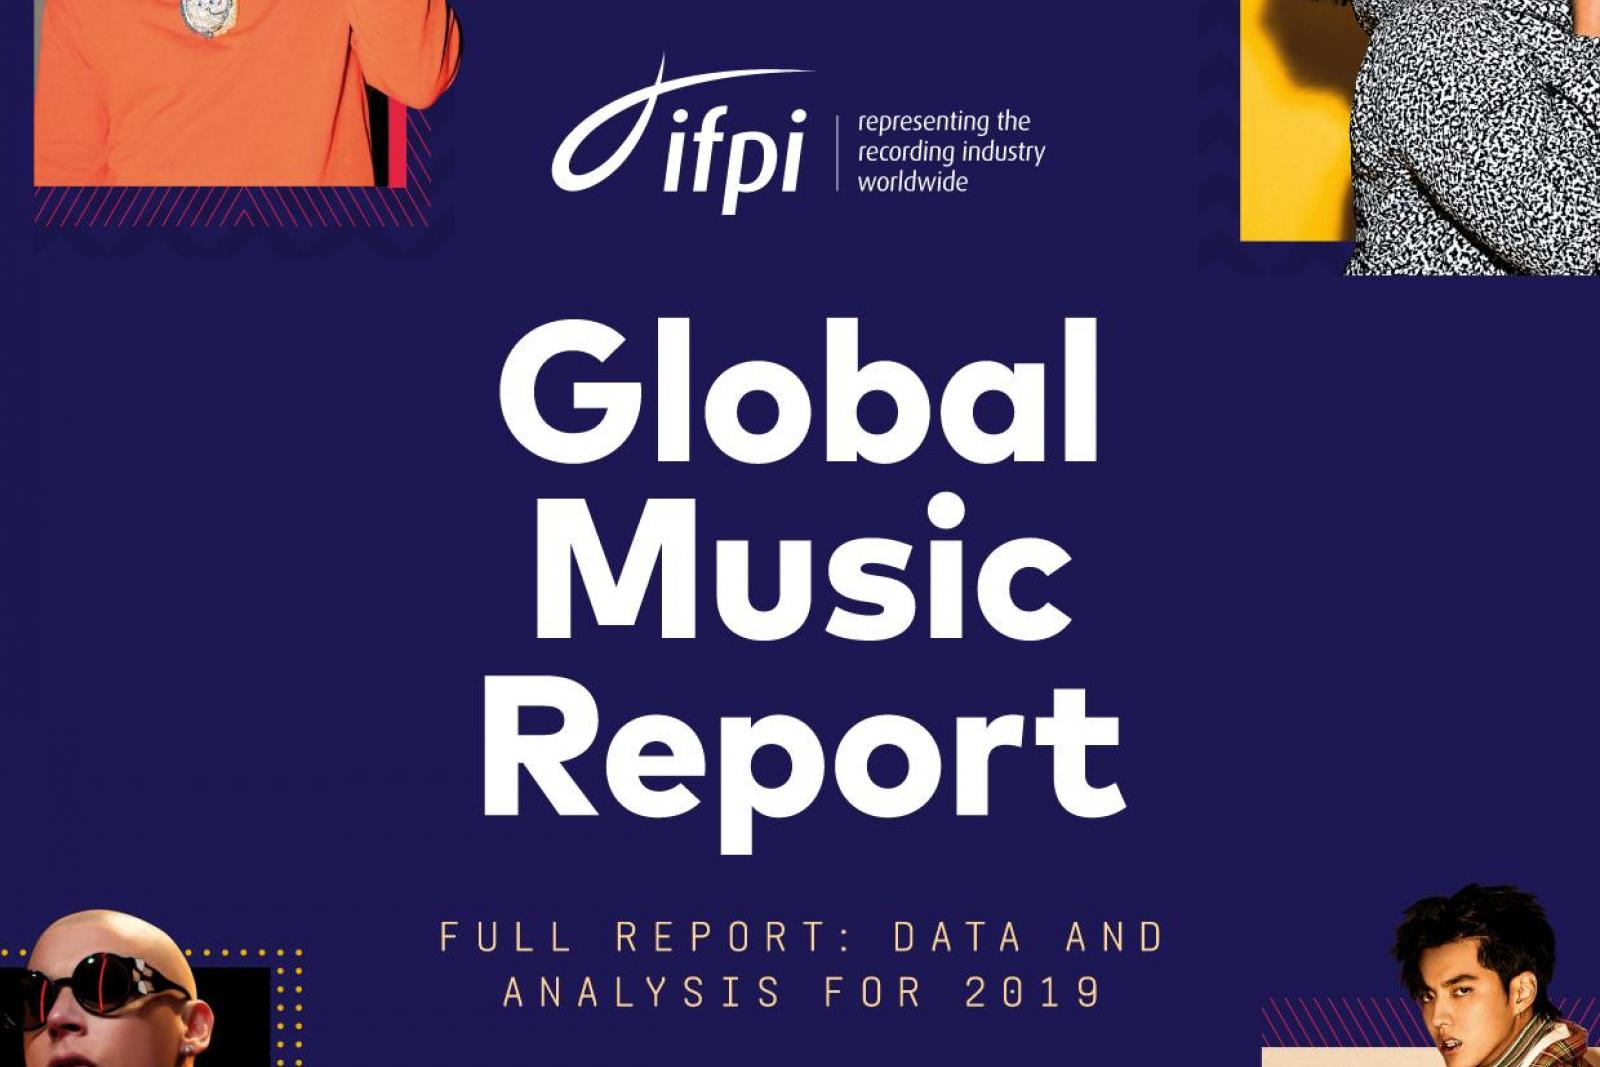 Global Music Report 2020